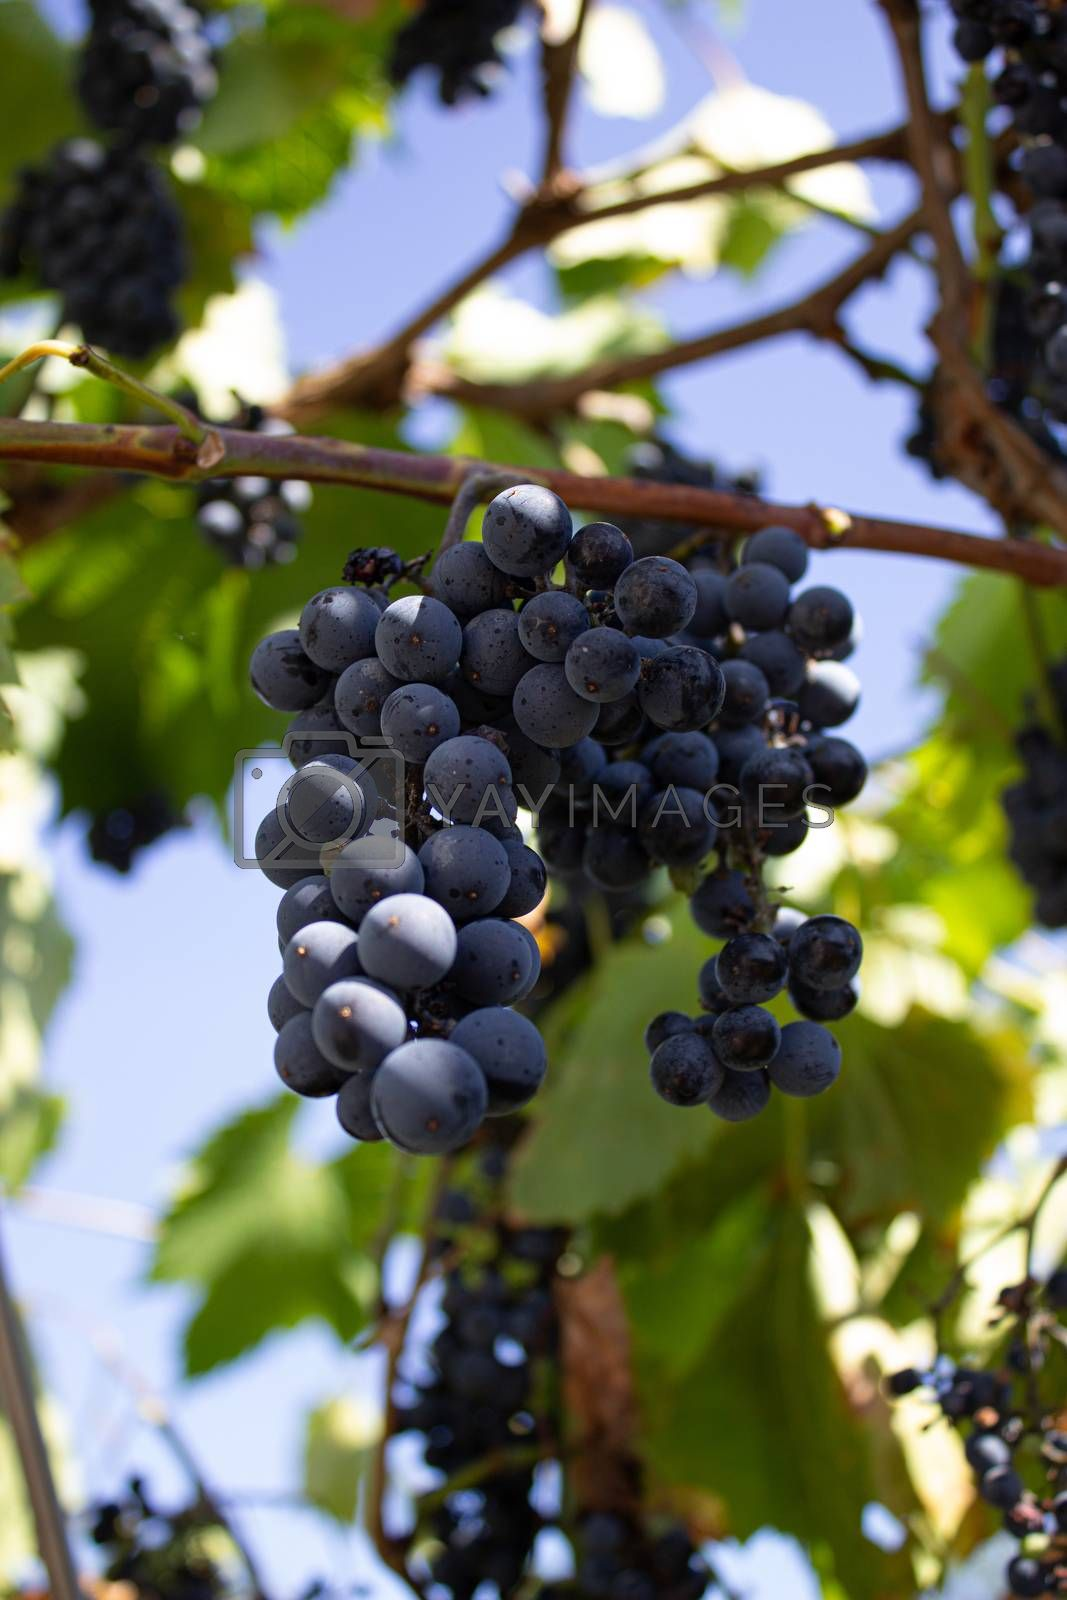 Clusters of red grapes on a vine. The harvest of the grapes. Viniculture.